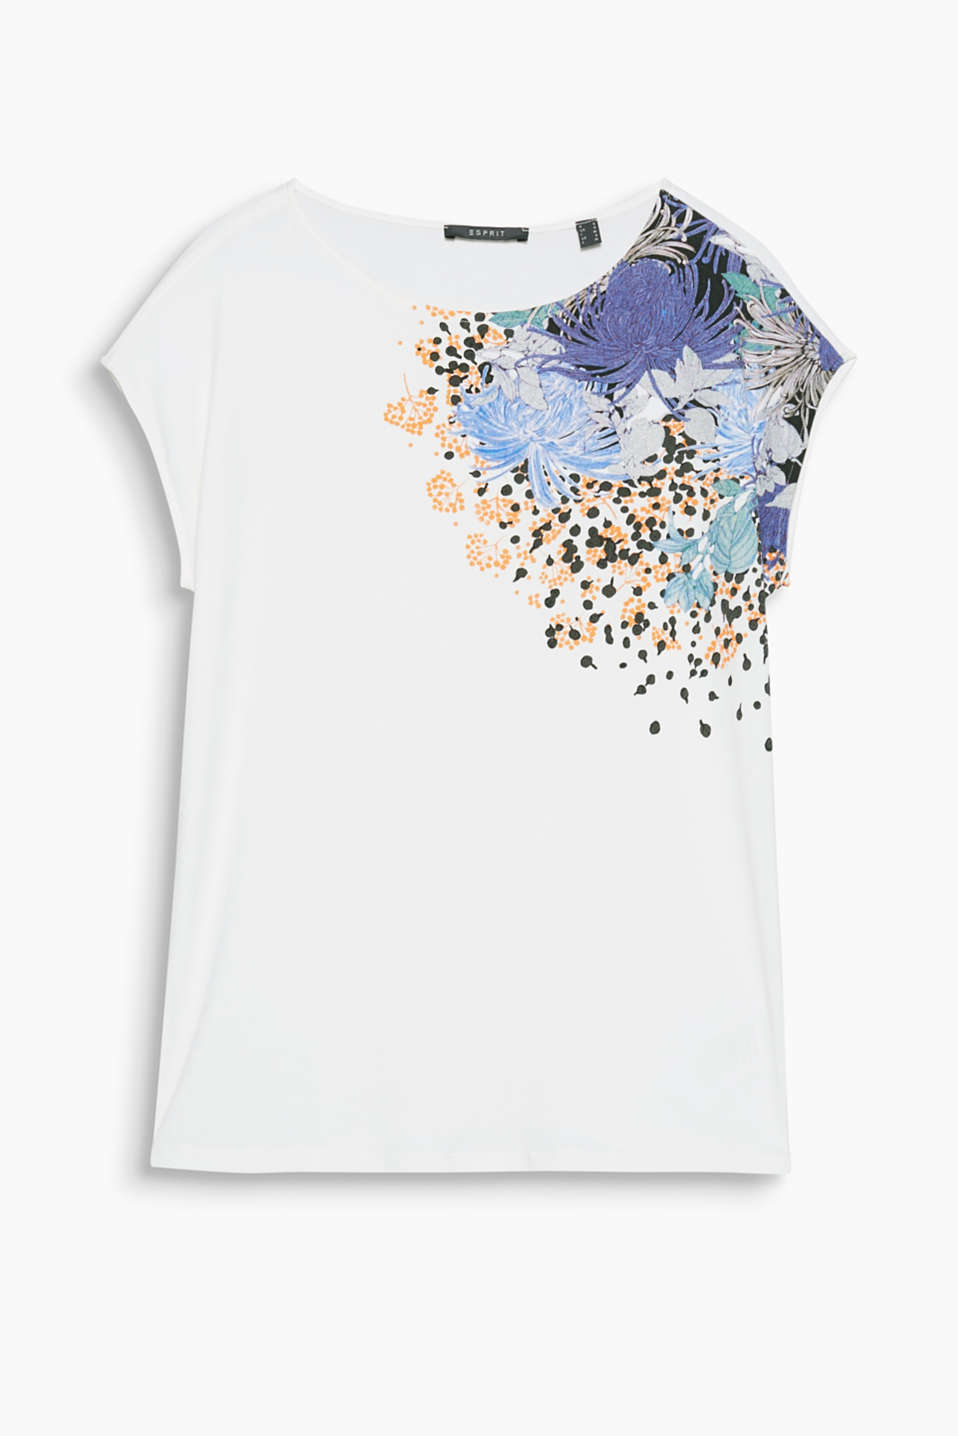 Flowing, floral and feminine – this loose-fitting printed T-shirt with a glitter effect is very flattering.